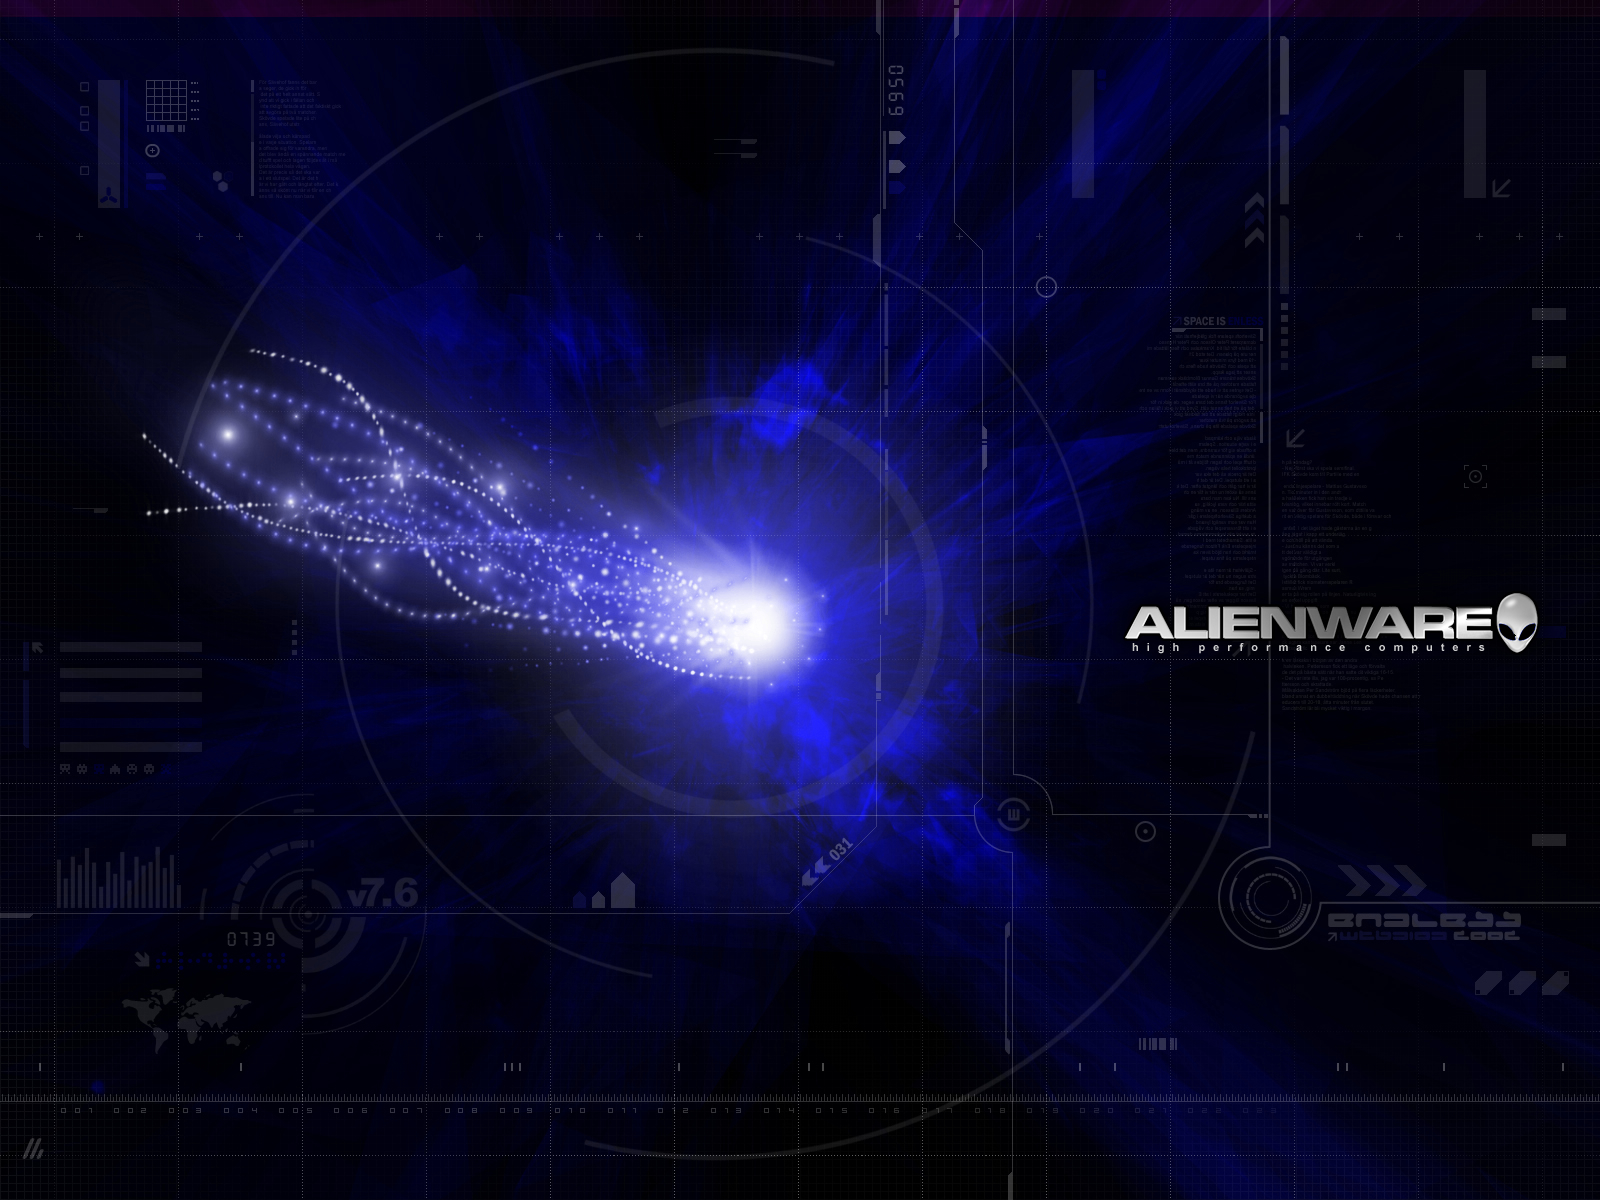 Alienware blue space wallpapers Alienware blue space stock photos 1600x1200